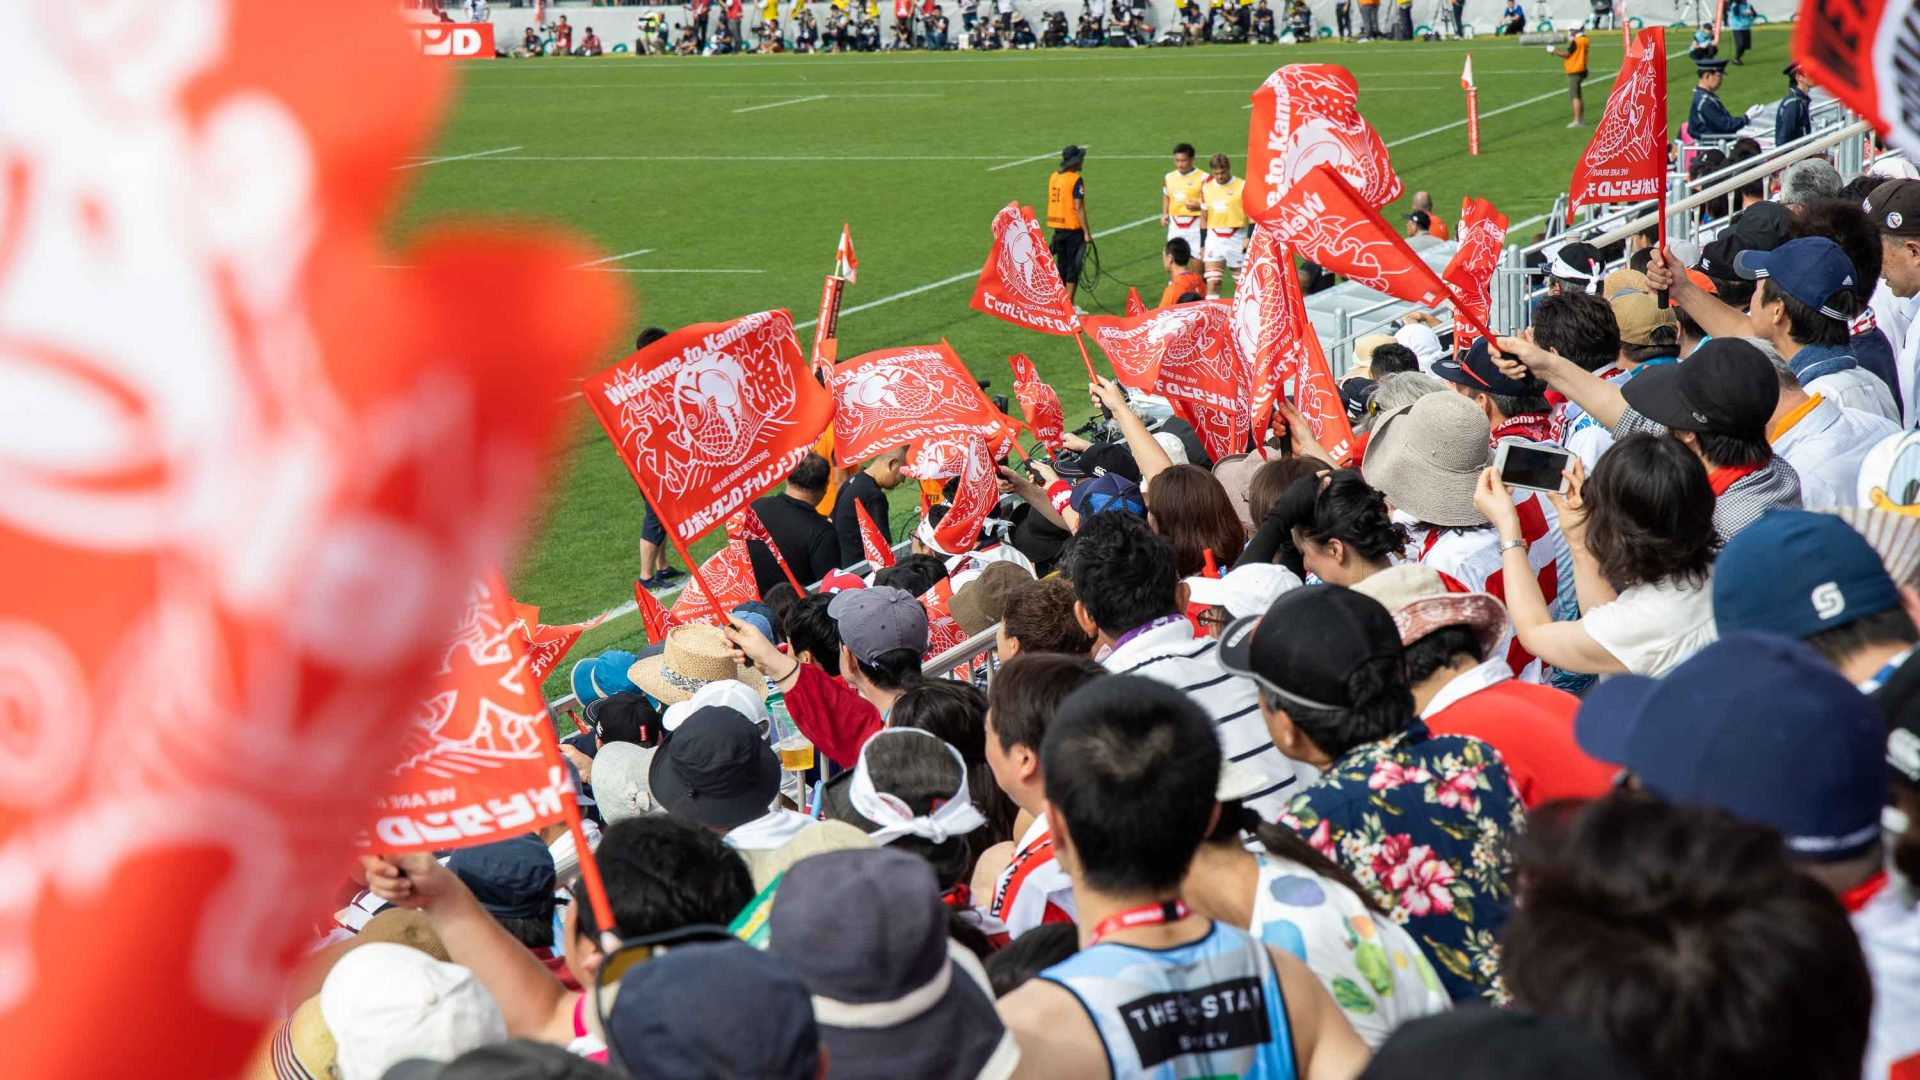 Fans wave flags during the first international match at the Kamaishi Memorial Recovery Stadium, between Japan and Fiji.